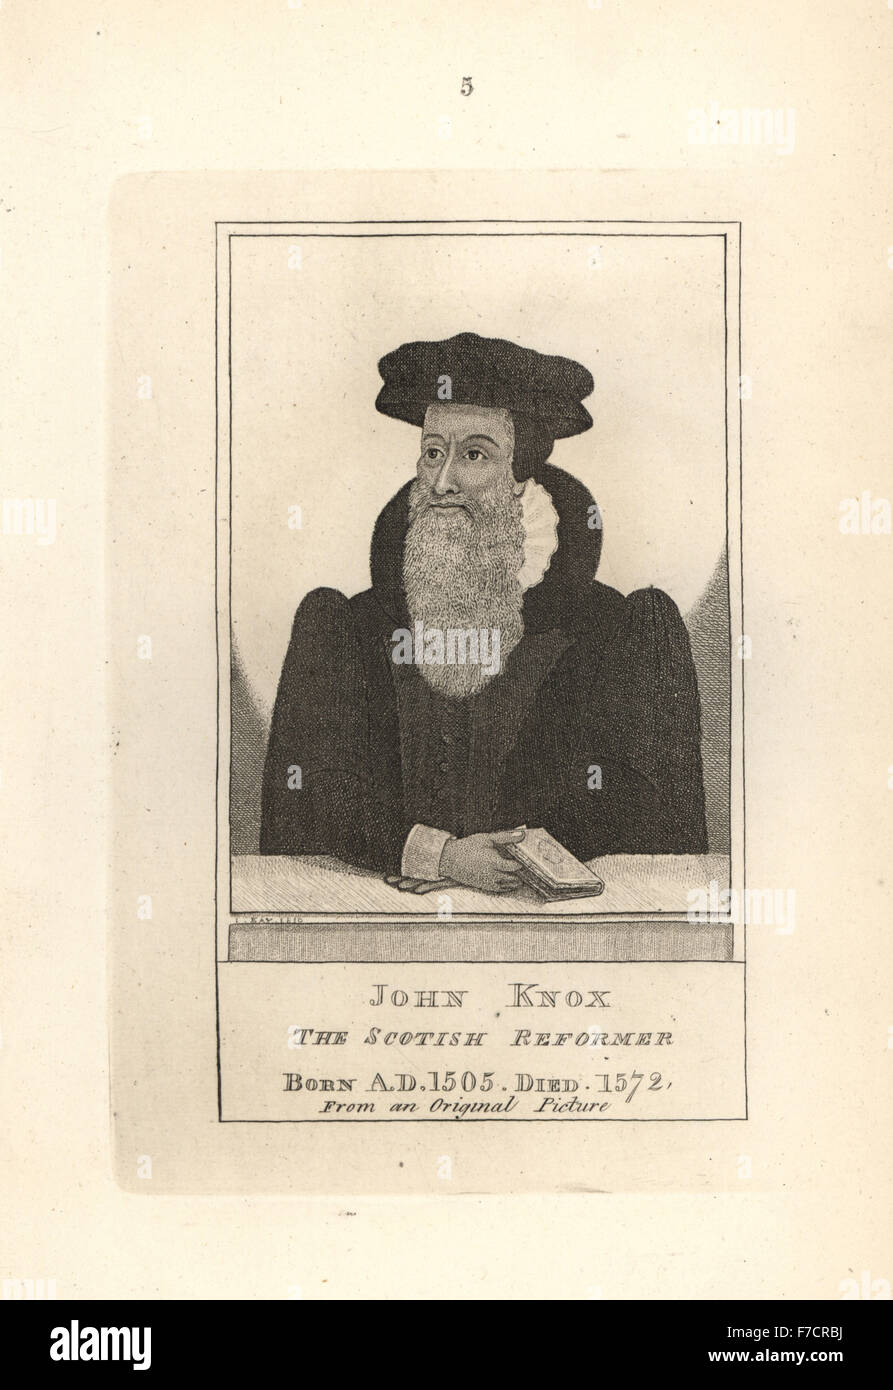 John Knox, the Scottish Reformer, from an original painting. Copperplate engraving by John Kay from A Series of - Stock Image